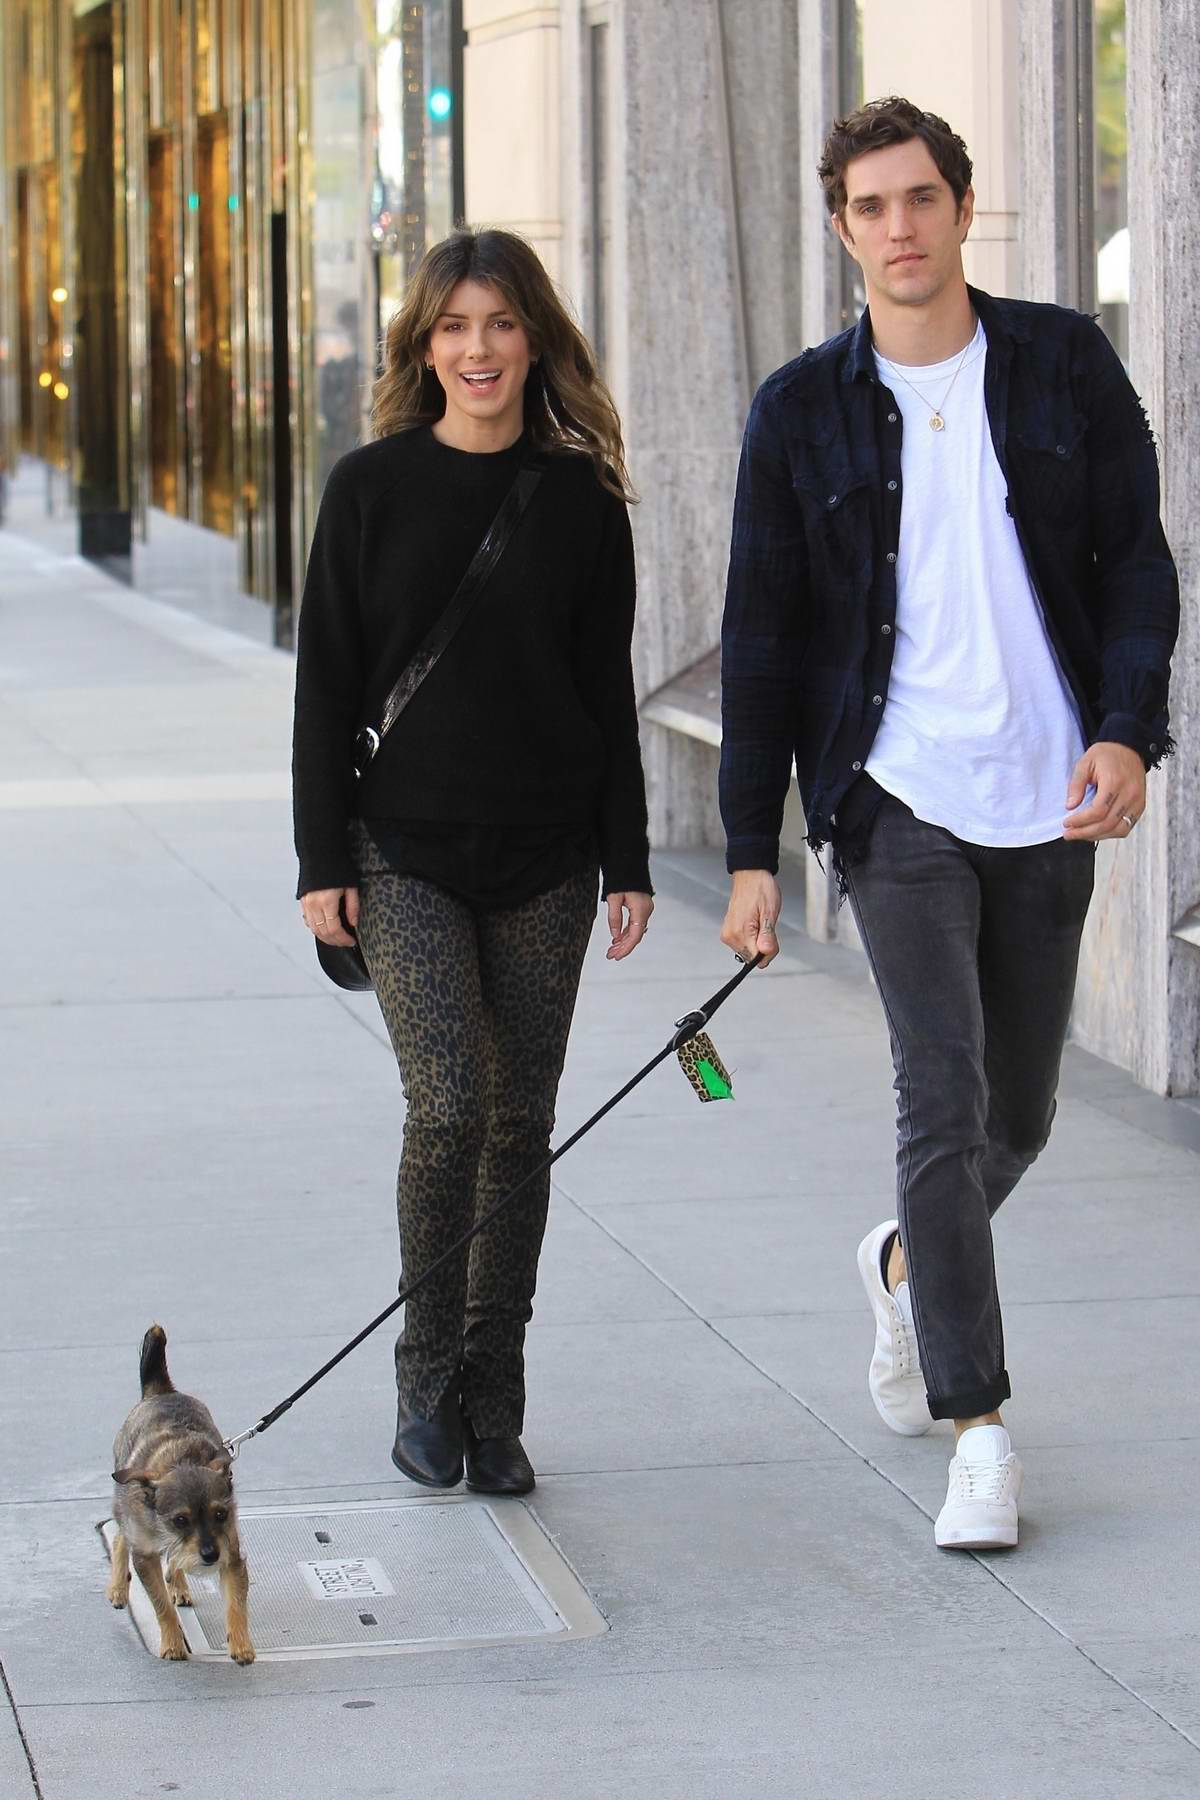 Shenae Grimes is all smiles with Josh Beech while out shopping in Beverly Hills, Los Angeles